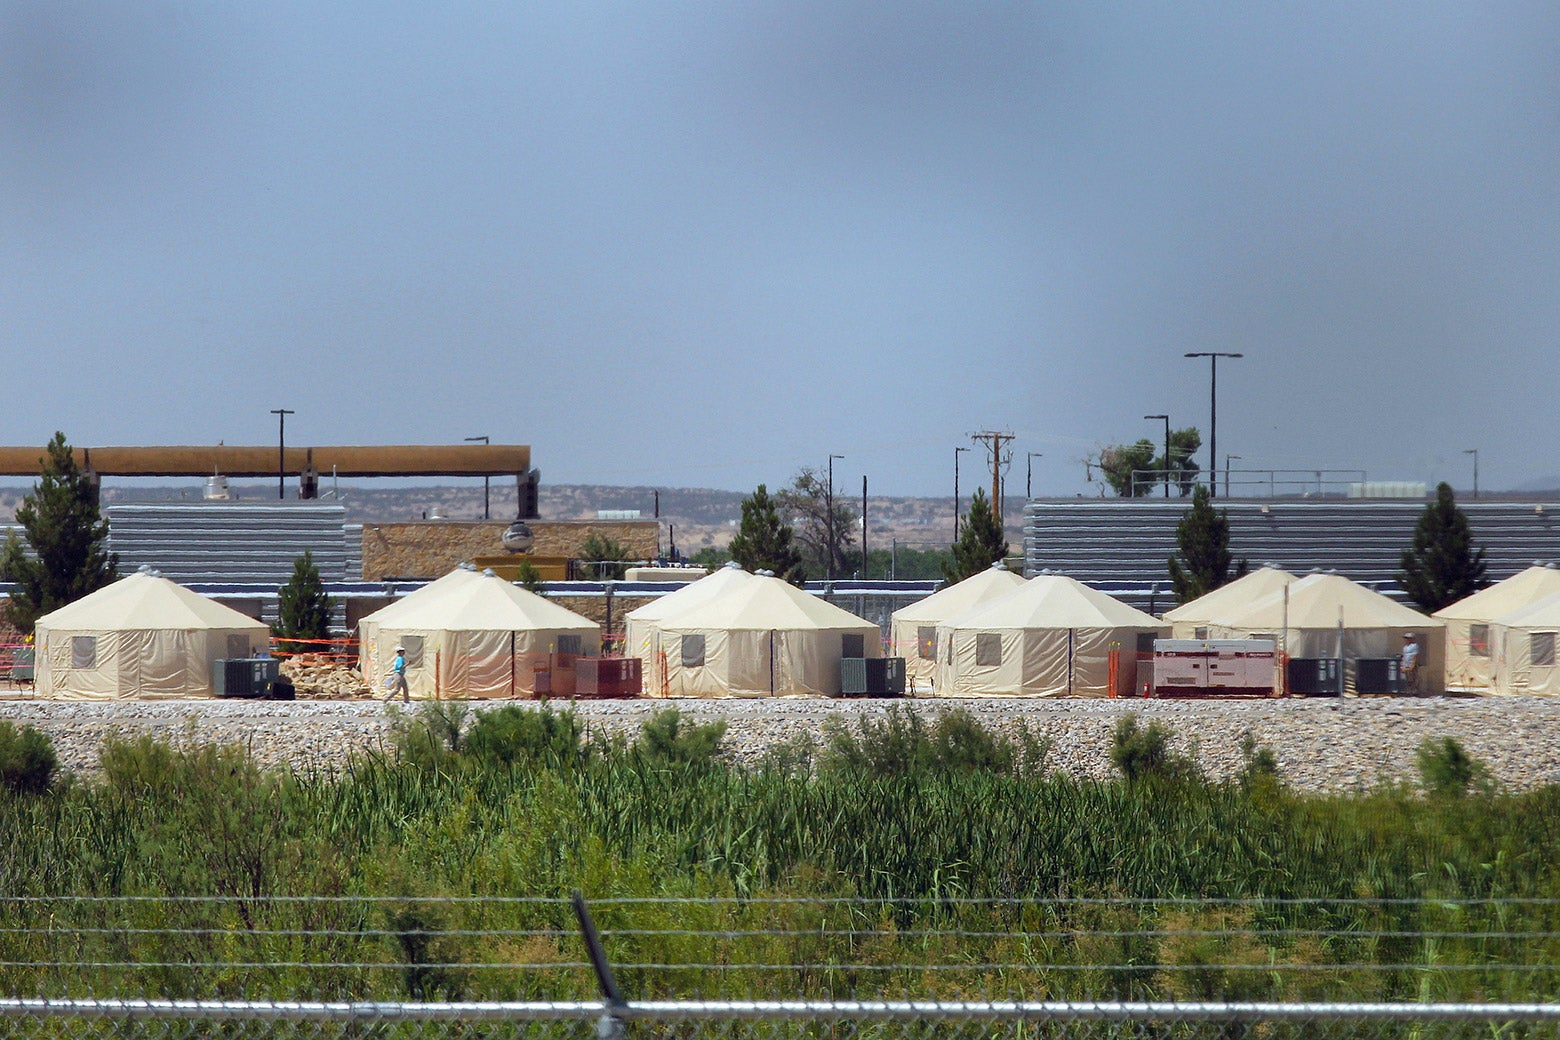 Behind barbed wire, tents are set up as a temporary detention center.